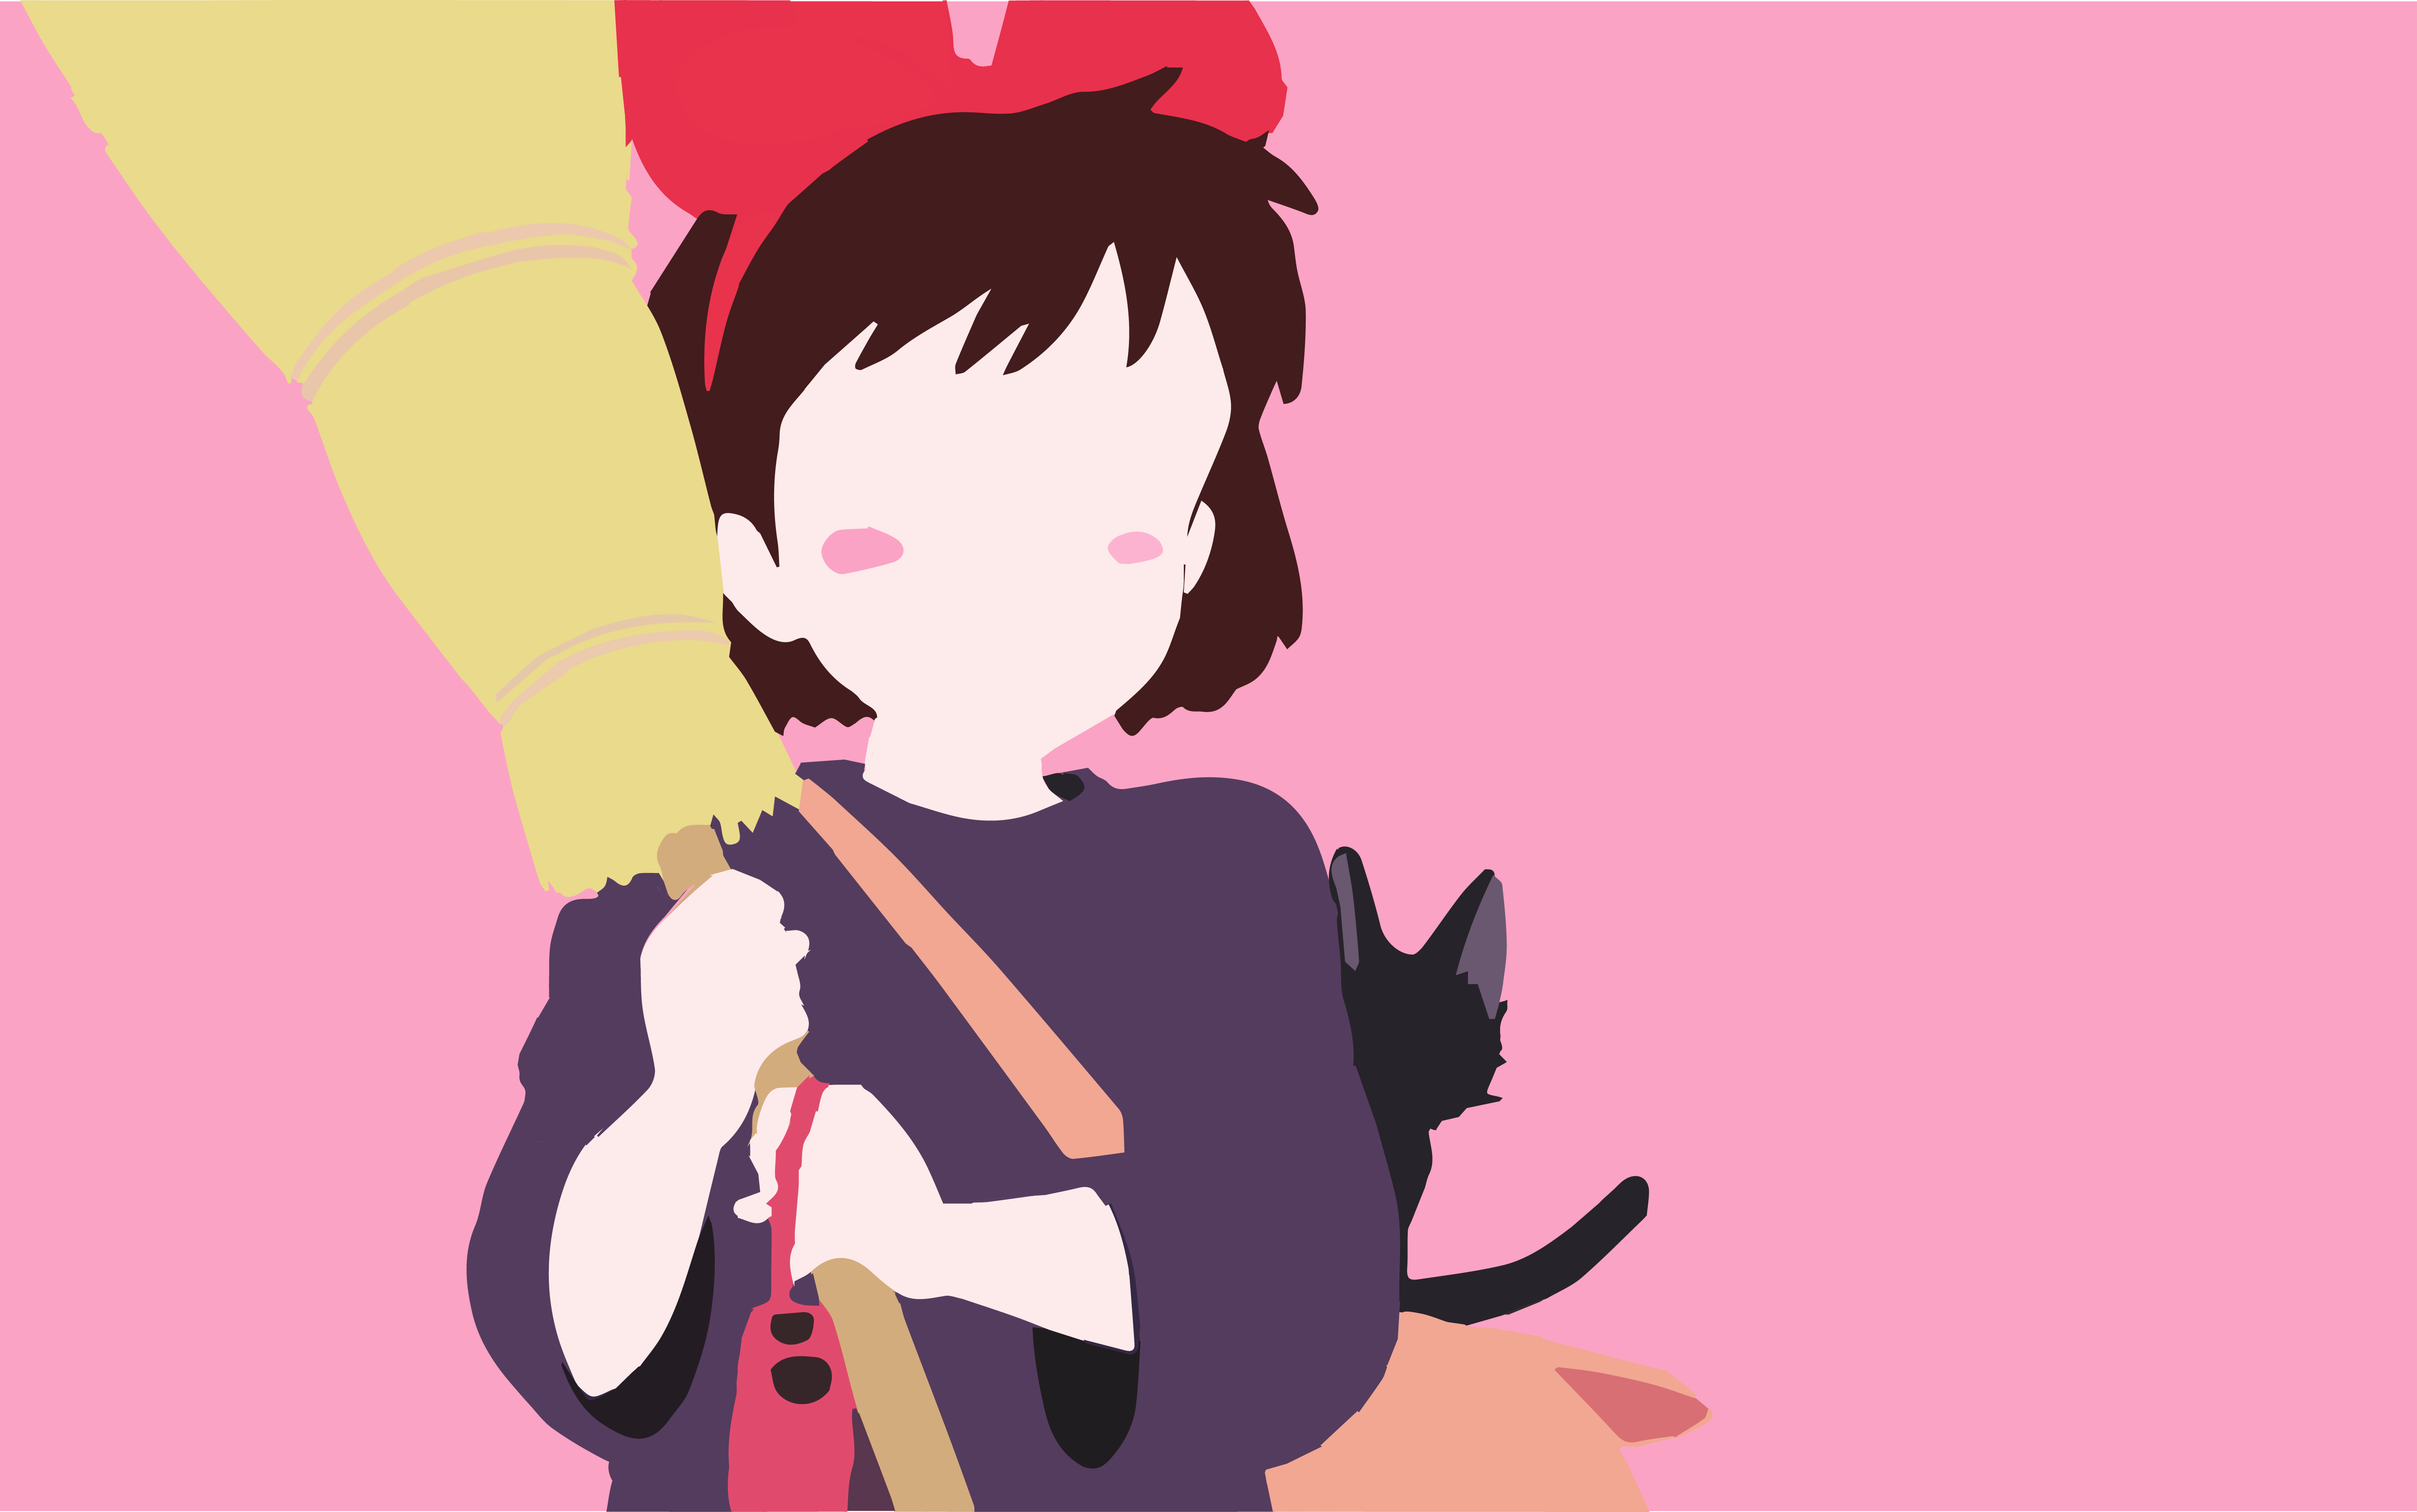 Kiki's Delivery Service by Justinoob on DeviantArt